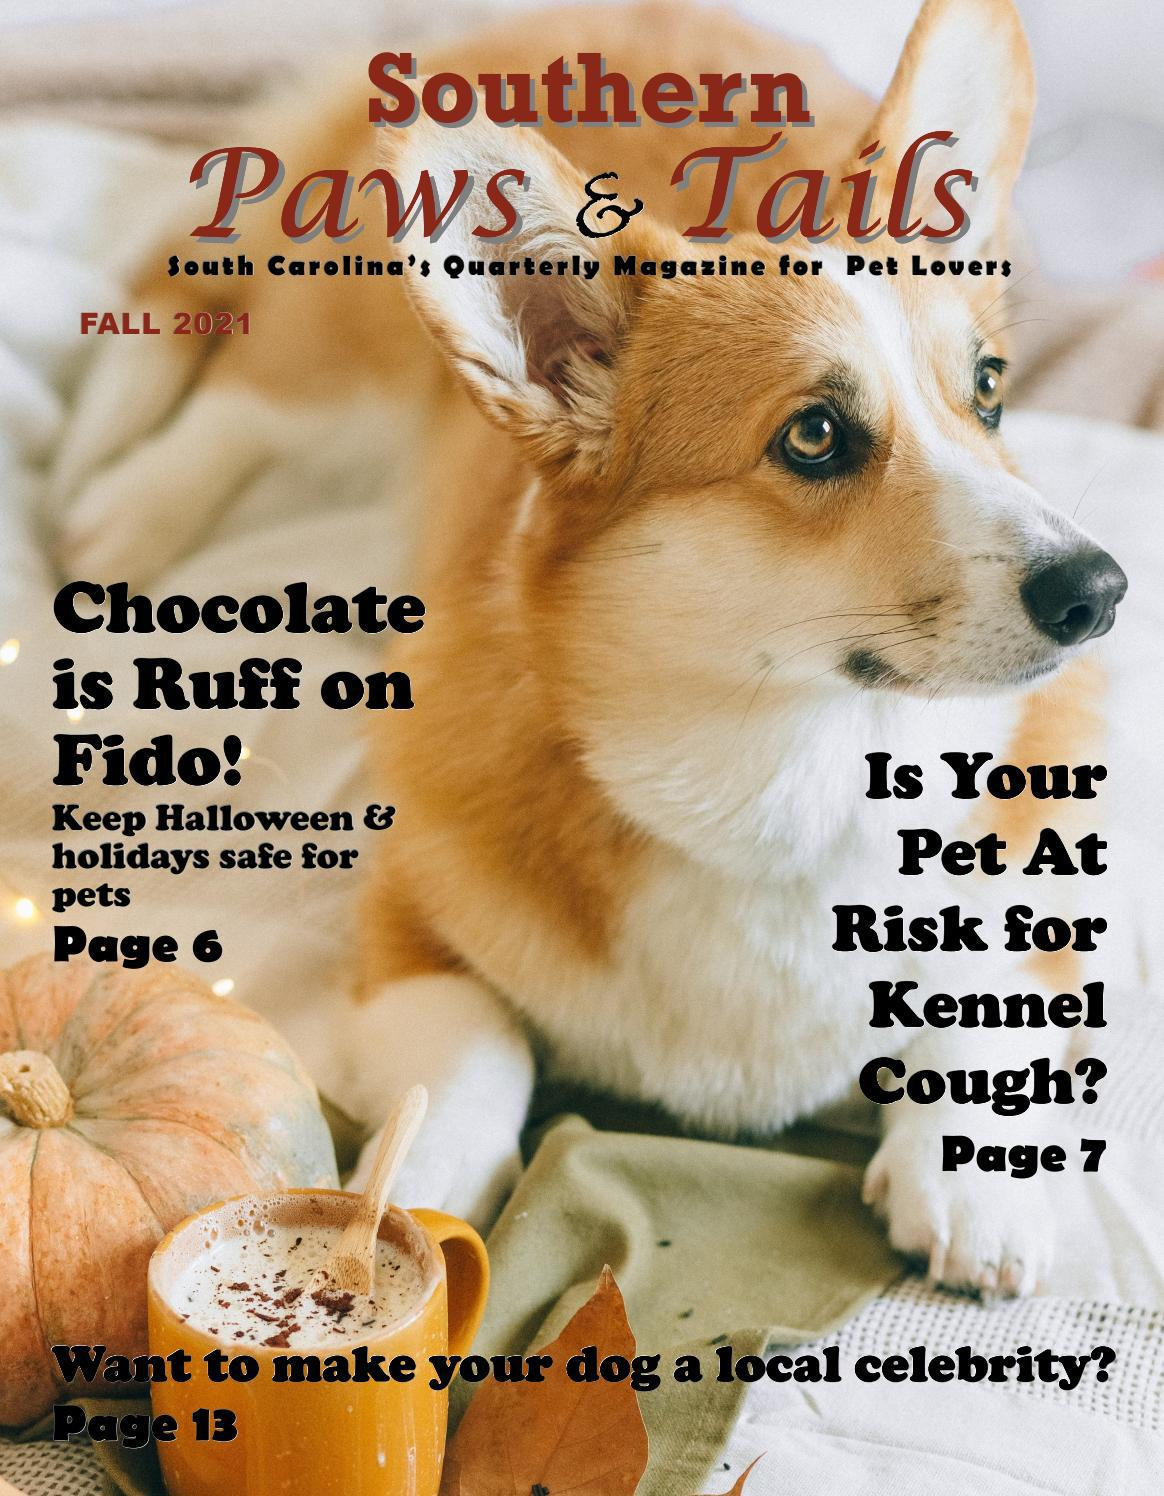 Southern Paws & Tails magazine Fall 2021